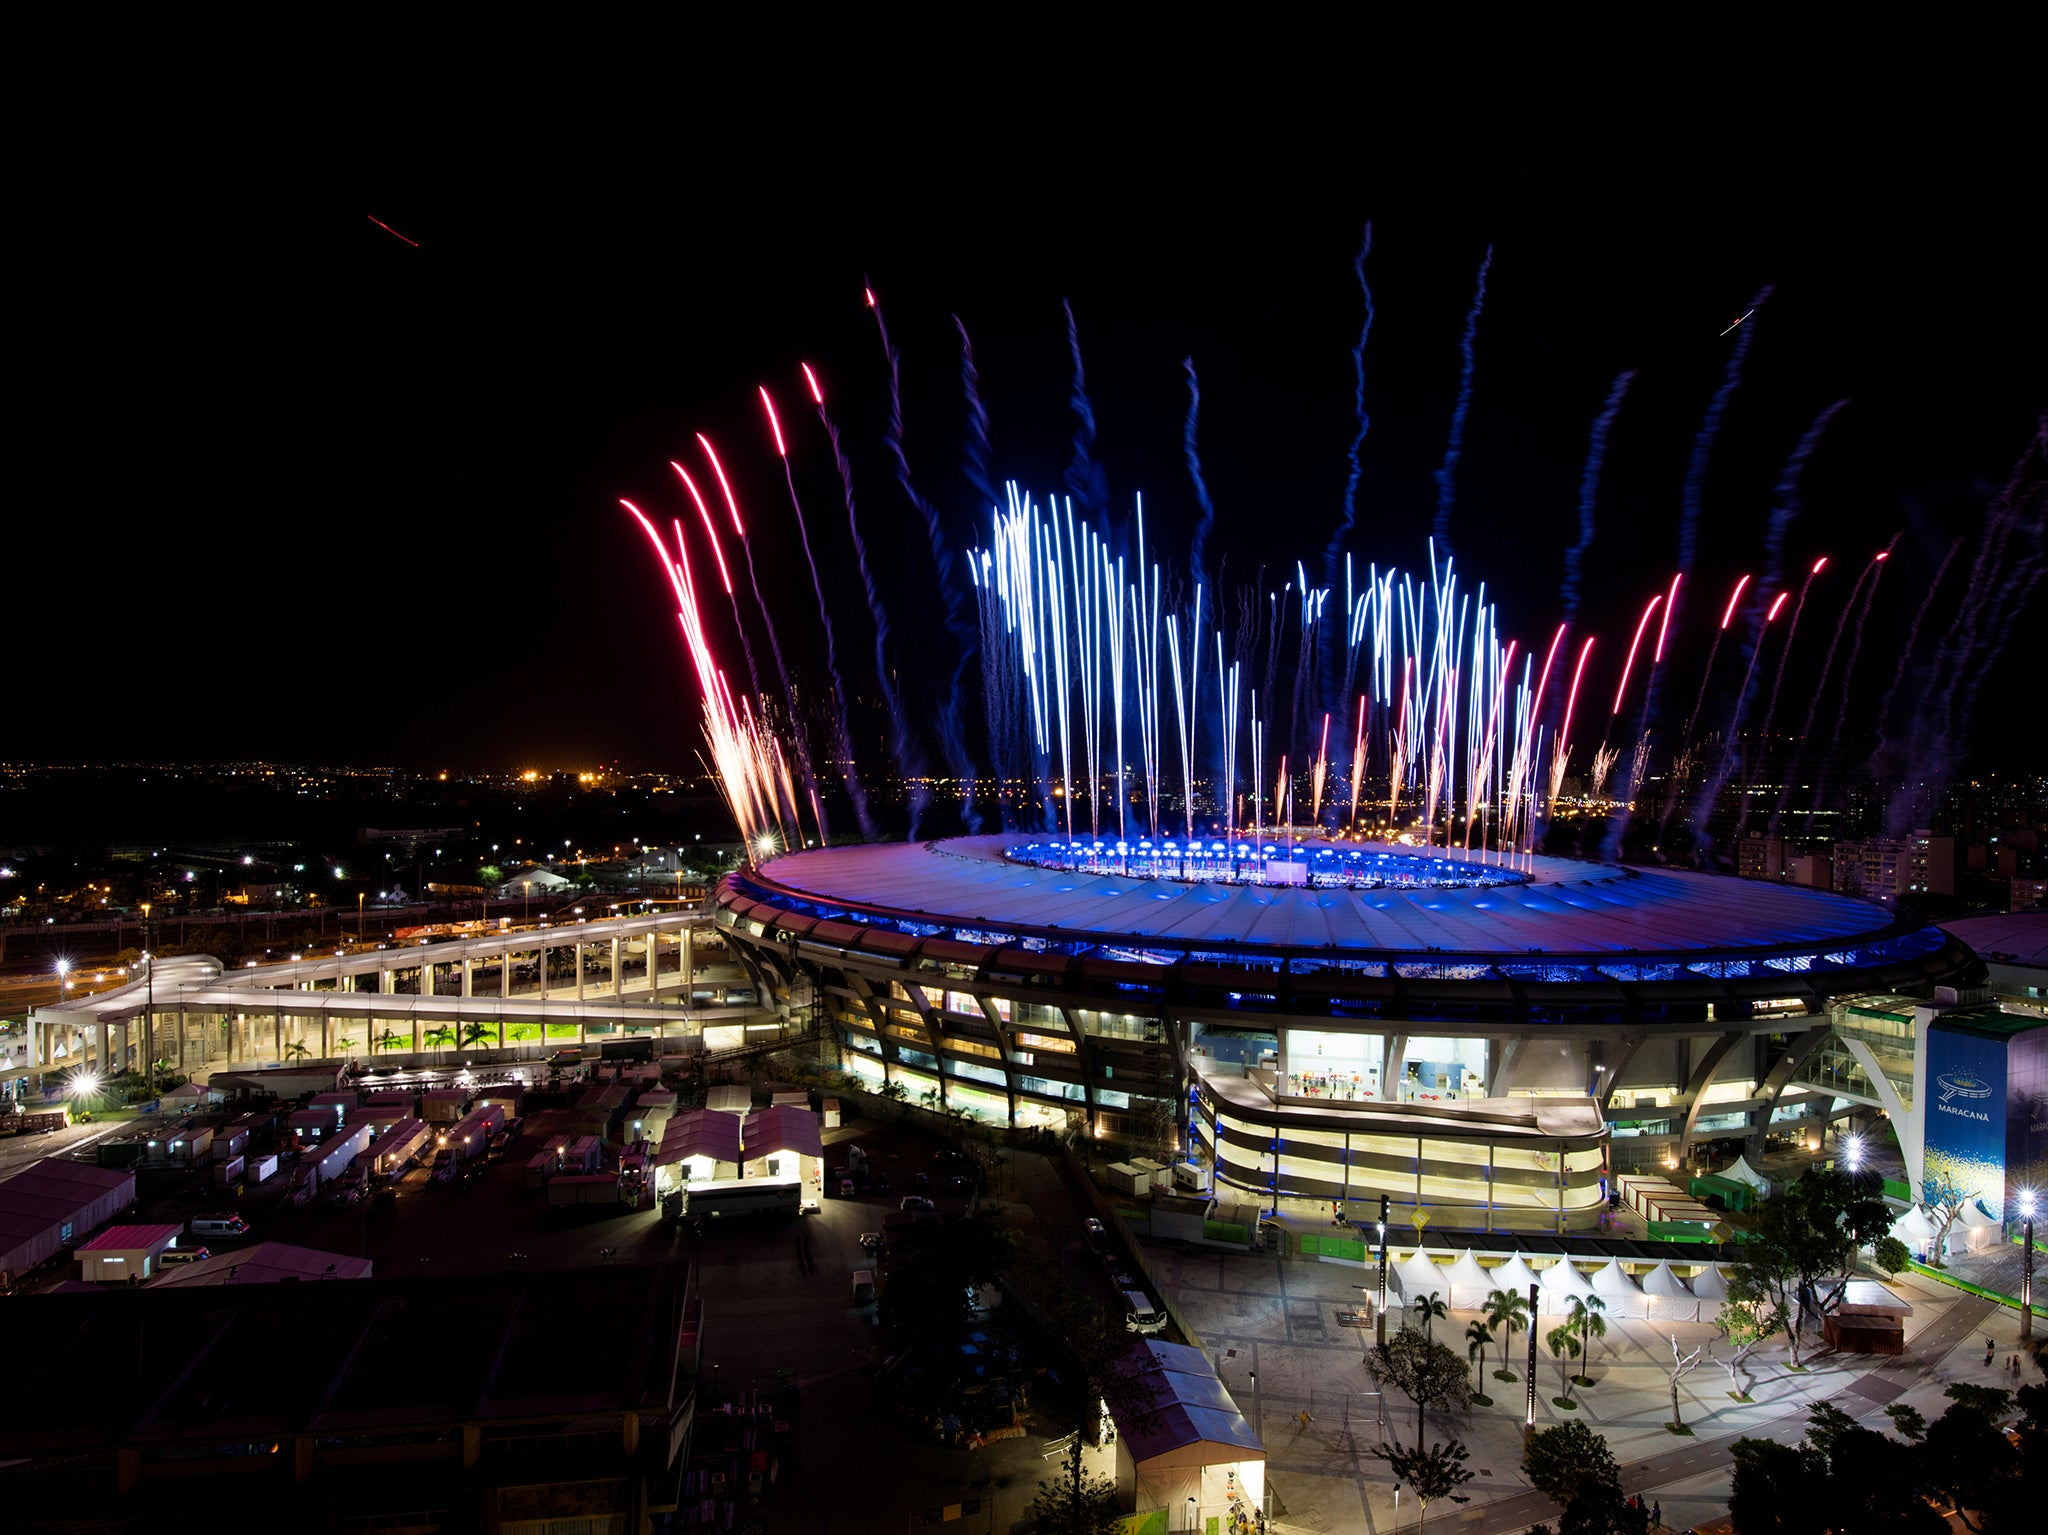 Rio 2016: When is the opening ceremony and what will happen?